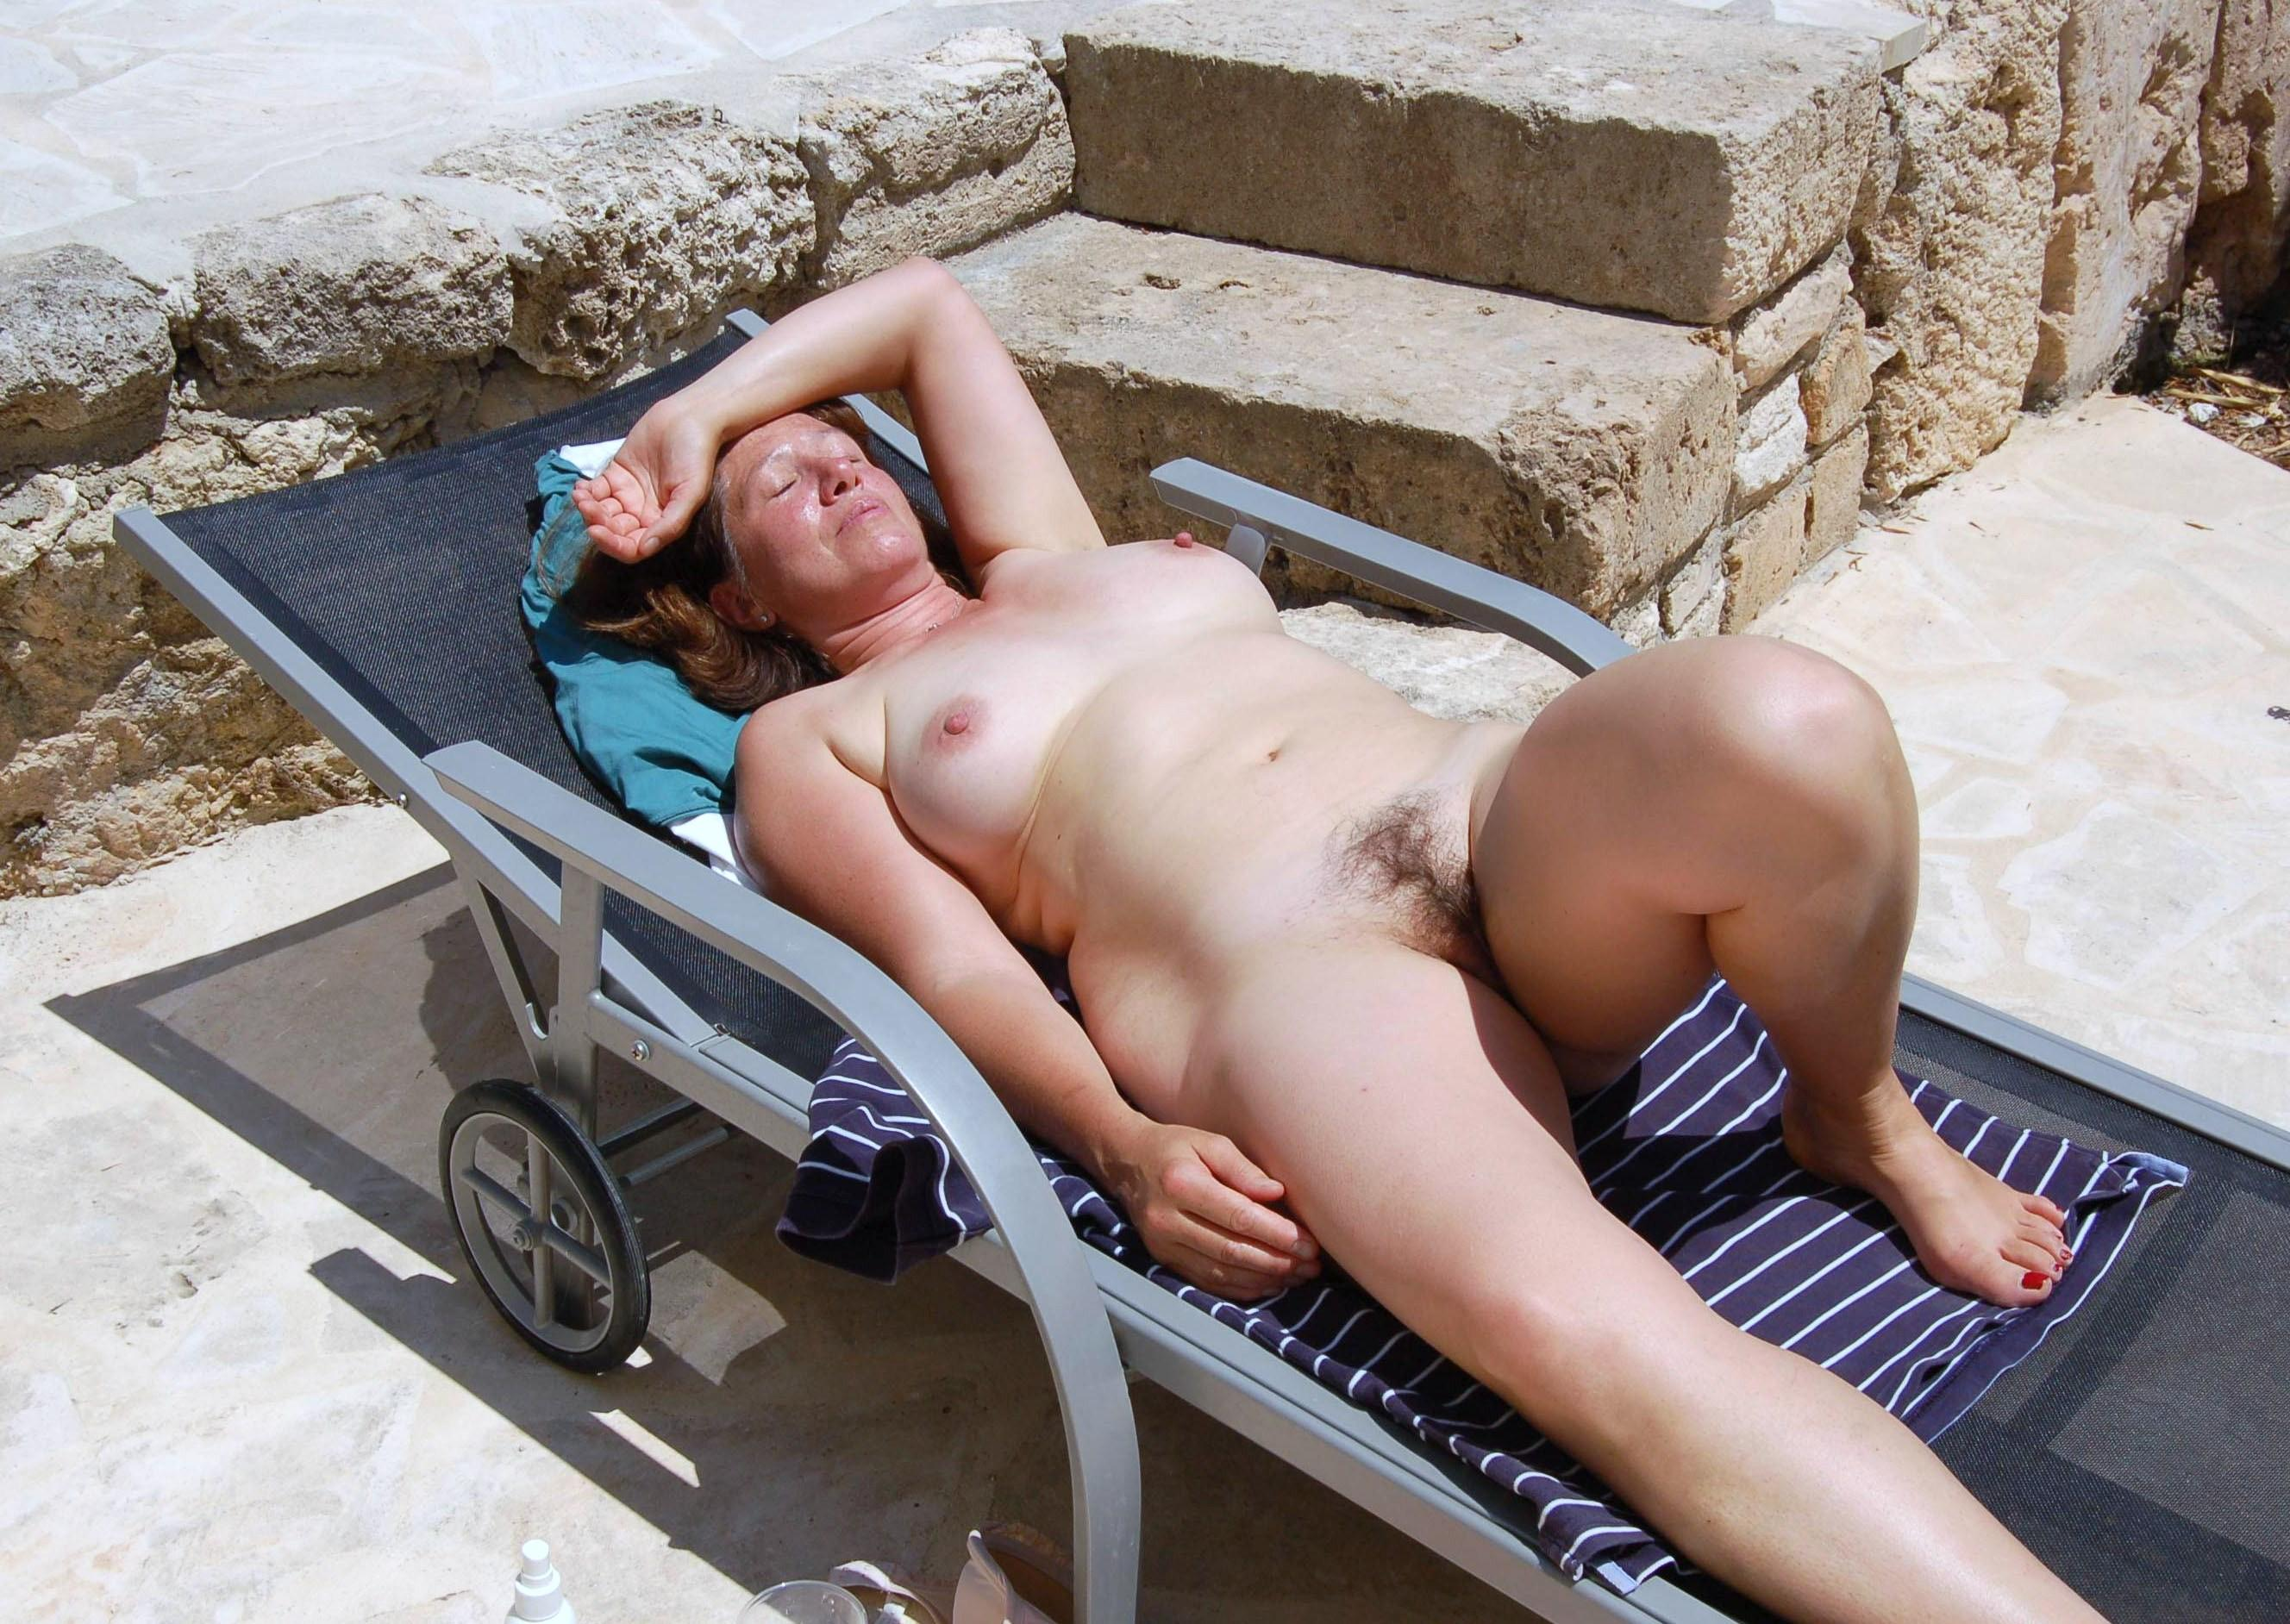 xxx-mature-nude-in-public